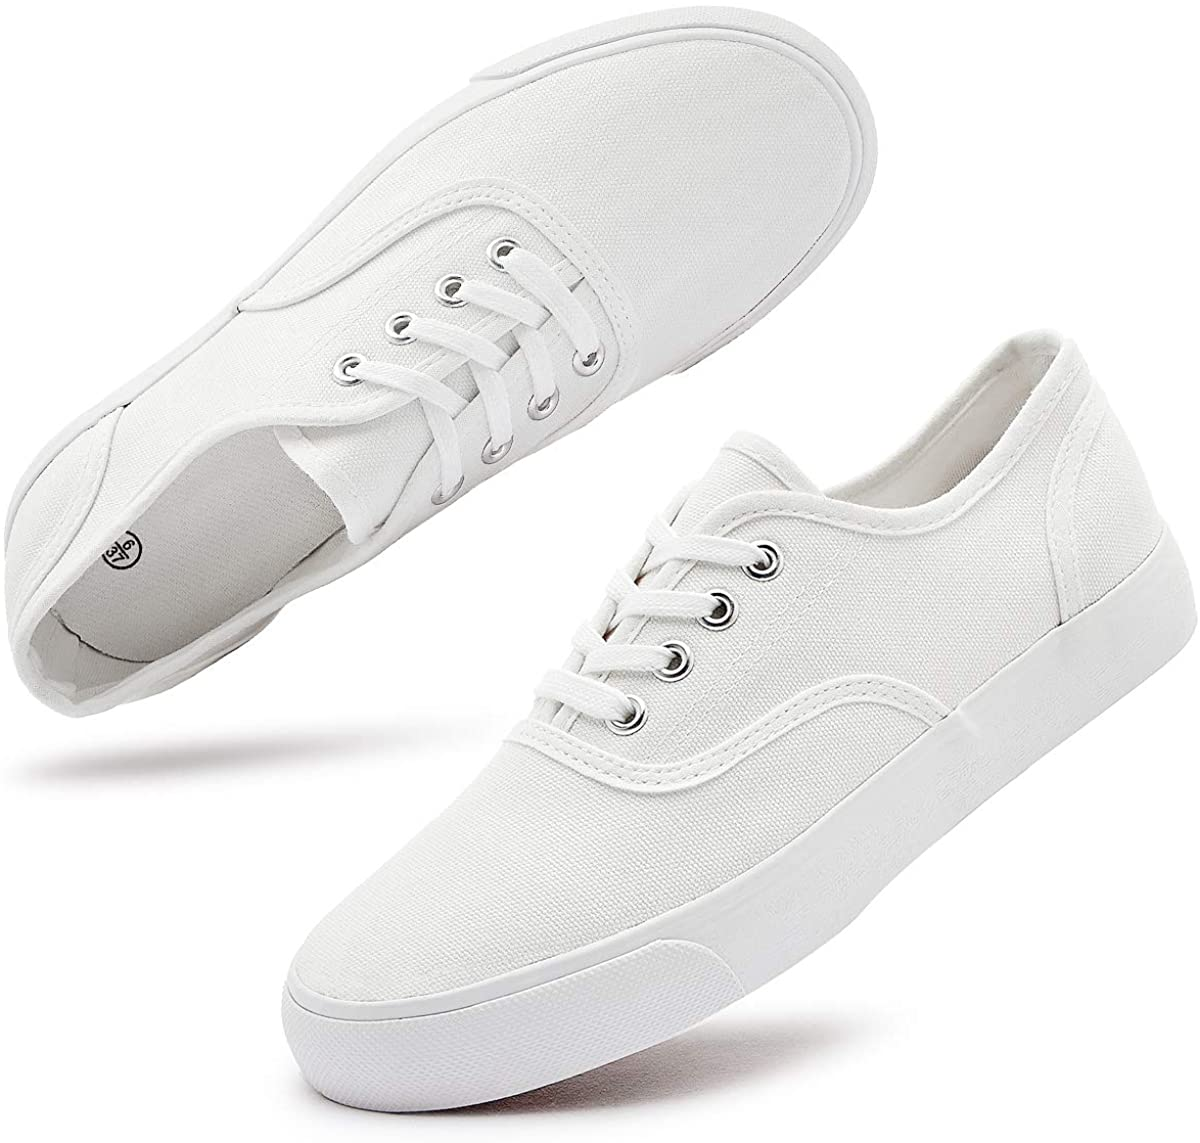 Women's White Canvas Shoes Fashion Canvas Sneakers Casual Low top Tennis Shoes Walking